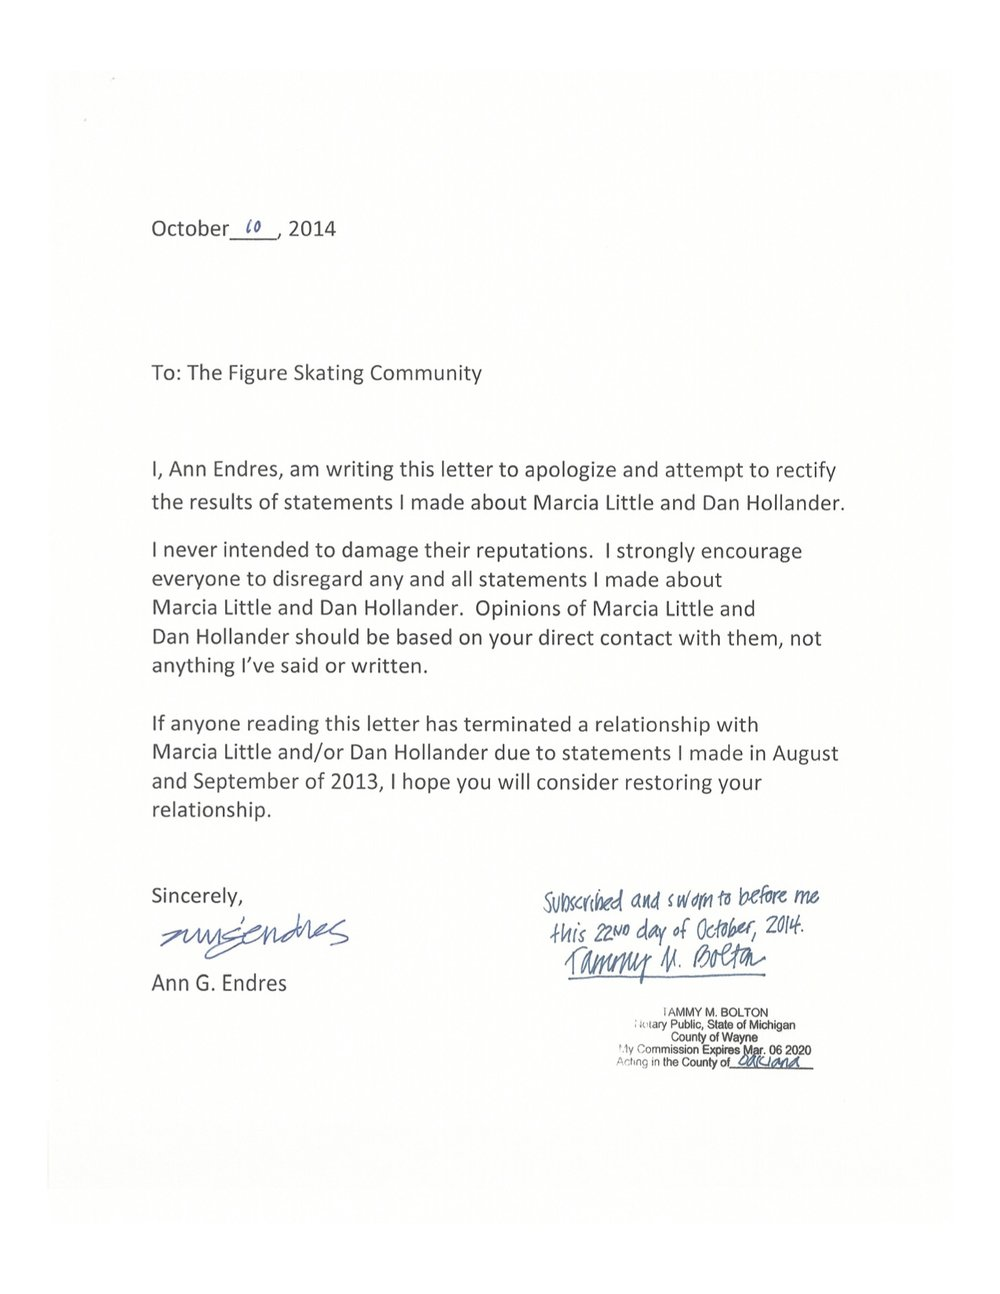 The apology letter of Ann Endres Skating Director for The City of